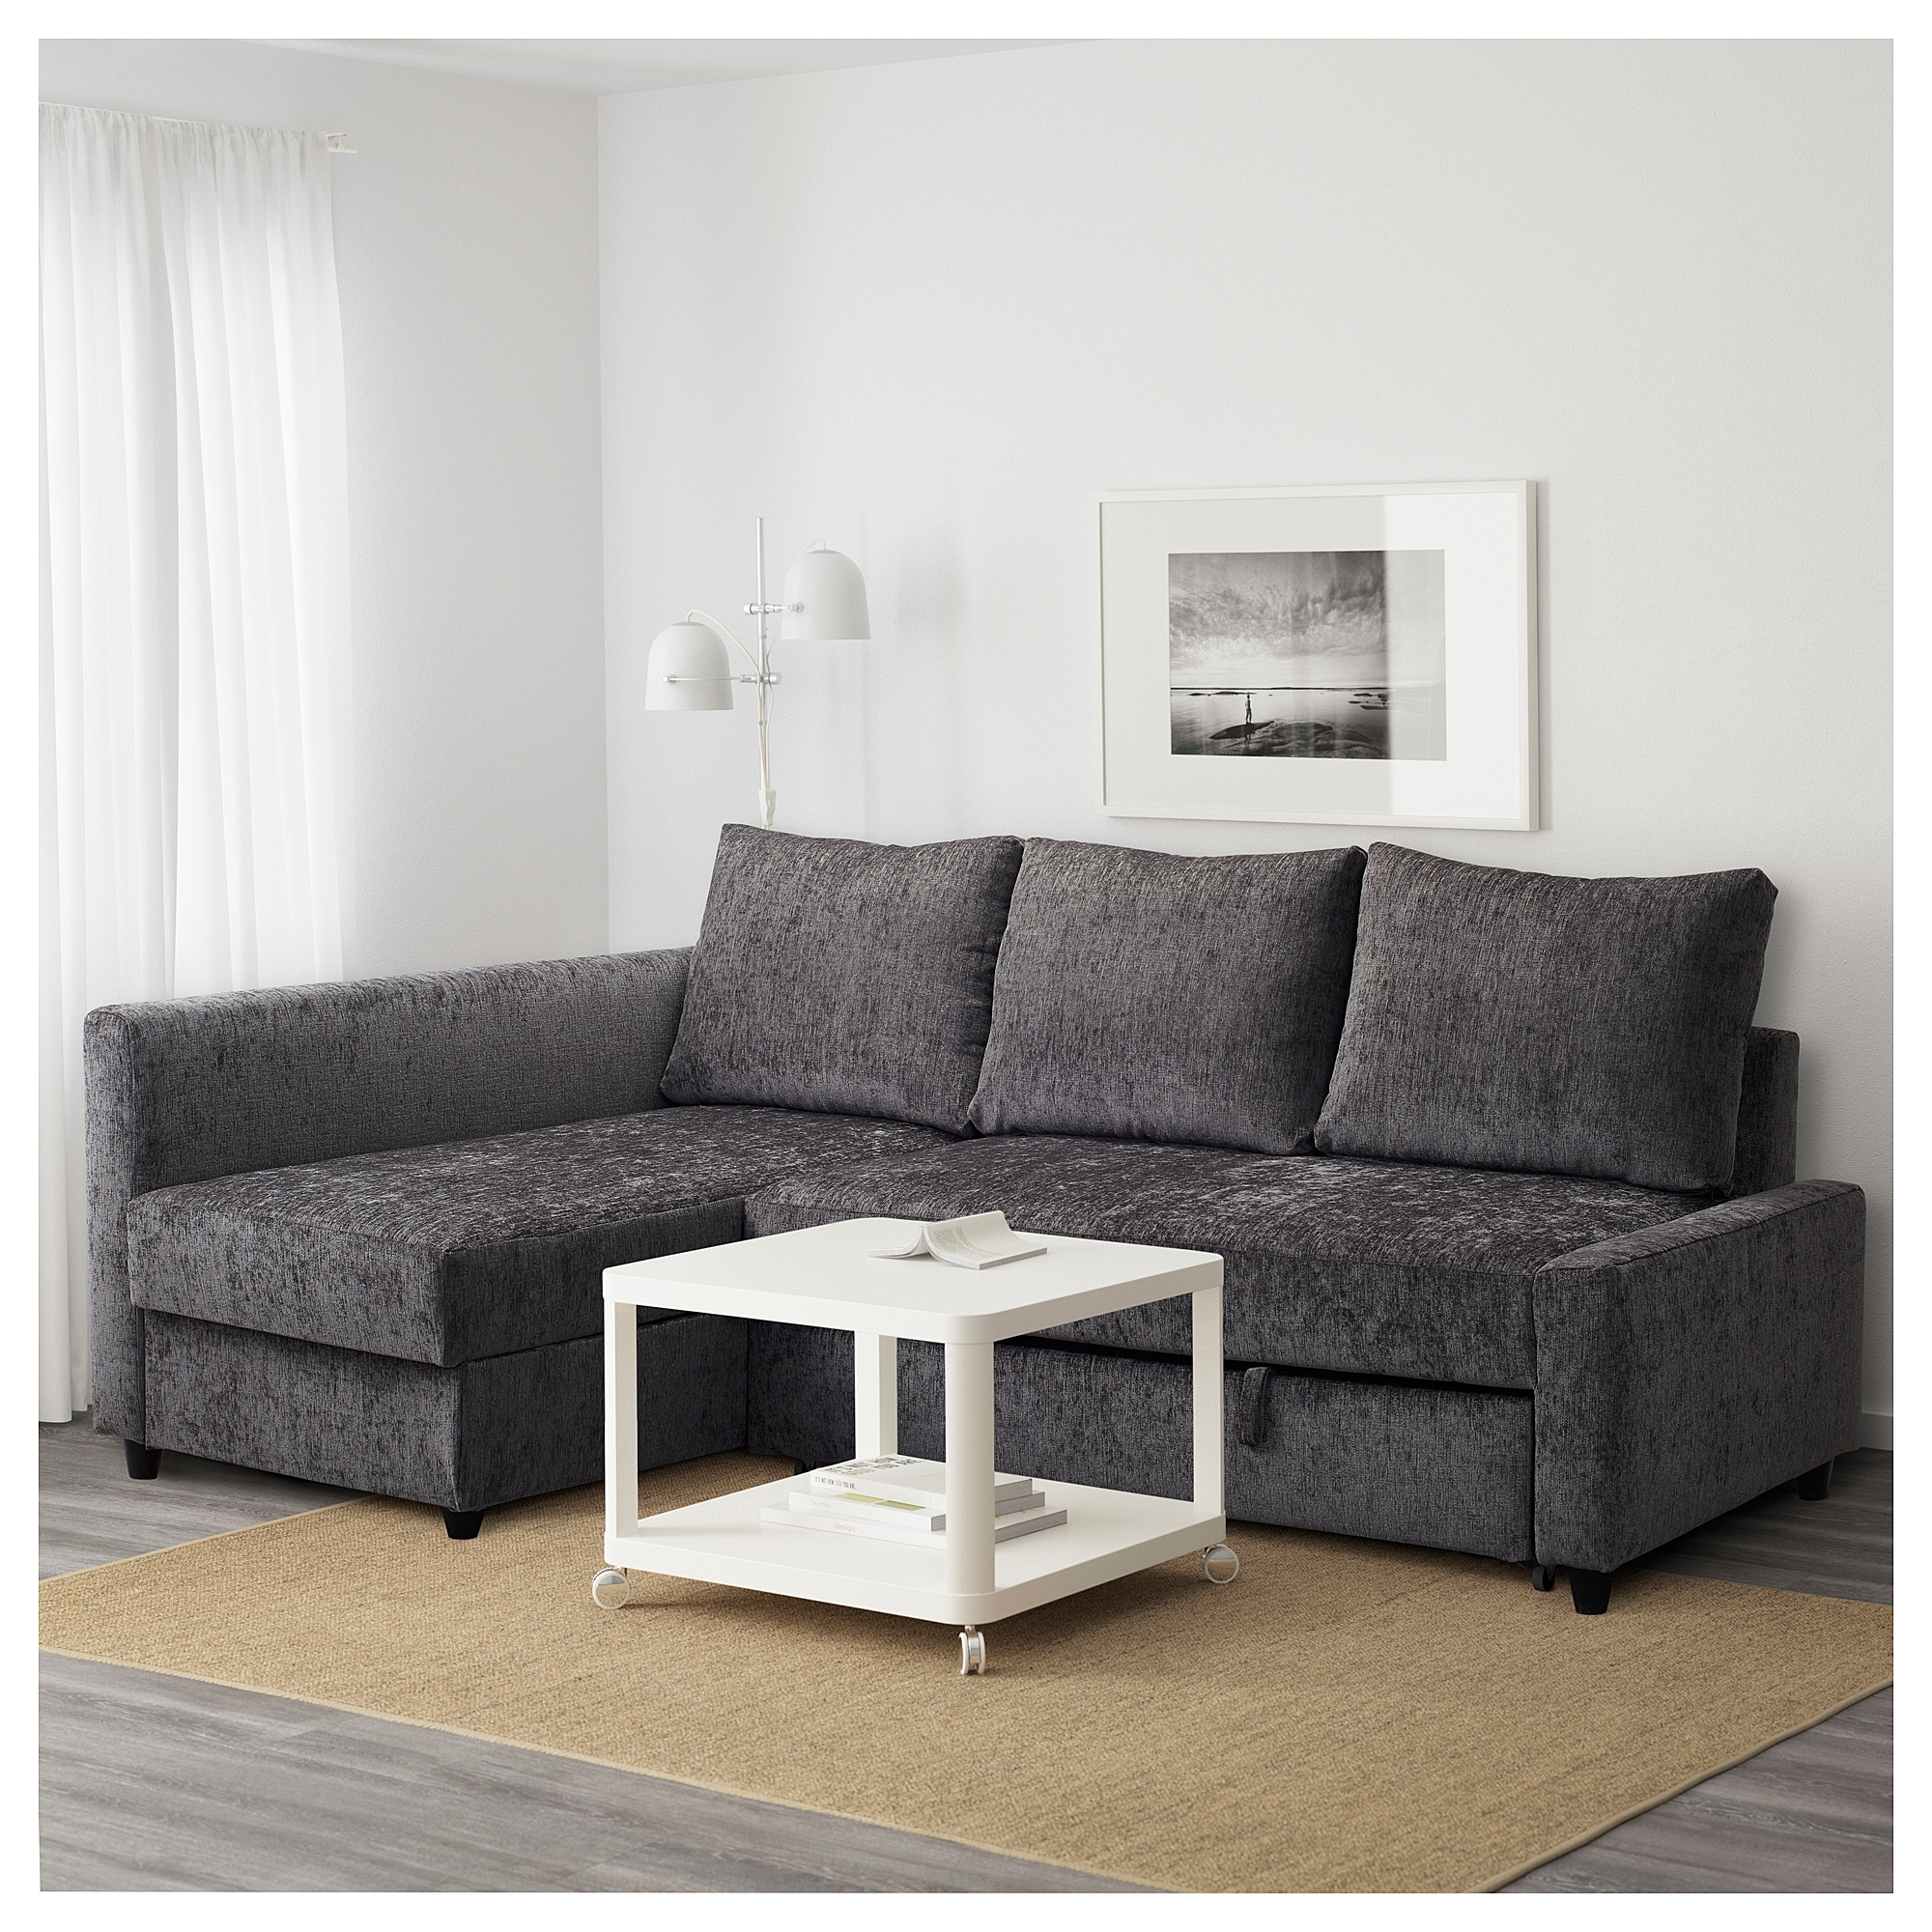 Friheten Corner Sofa Bed With Storage Dark Grey – Ikea Throughout Ikea Corner Sofas With Storage (View 4 of 10)